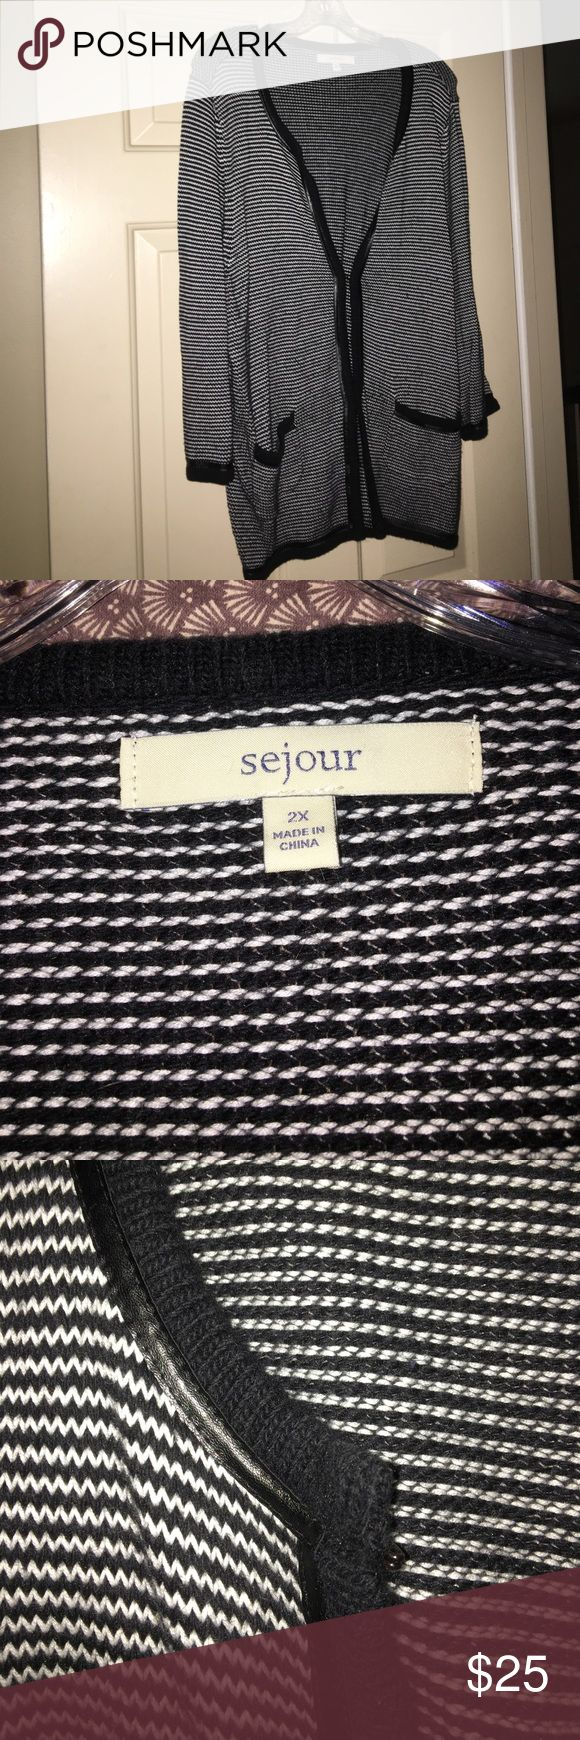 Sejour black and white cardigan size 2X This black and white cardigan is quite versatile as an extra layer of warmth or as a fashion piece.  Hook and eye closures up the front to make this a perfect cardigan. Sejour Sweaters Cardigans